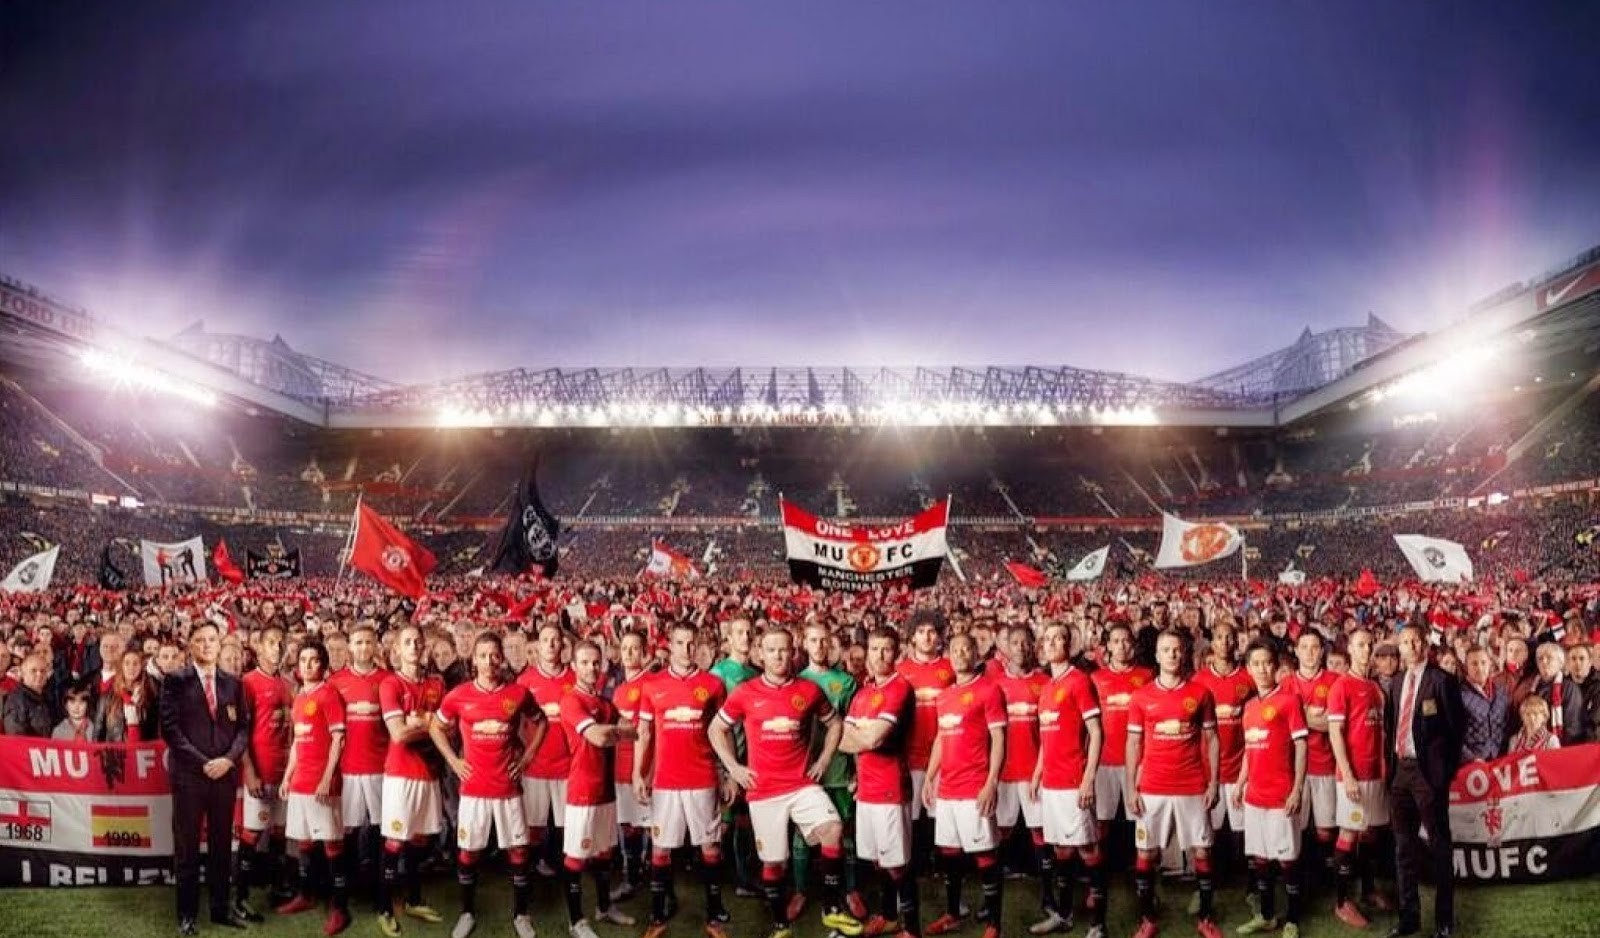 Sport Wallpaper Manchester United: Manchester United Football Club Group Latest HD Wallpaper